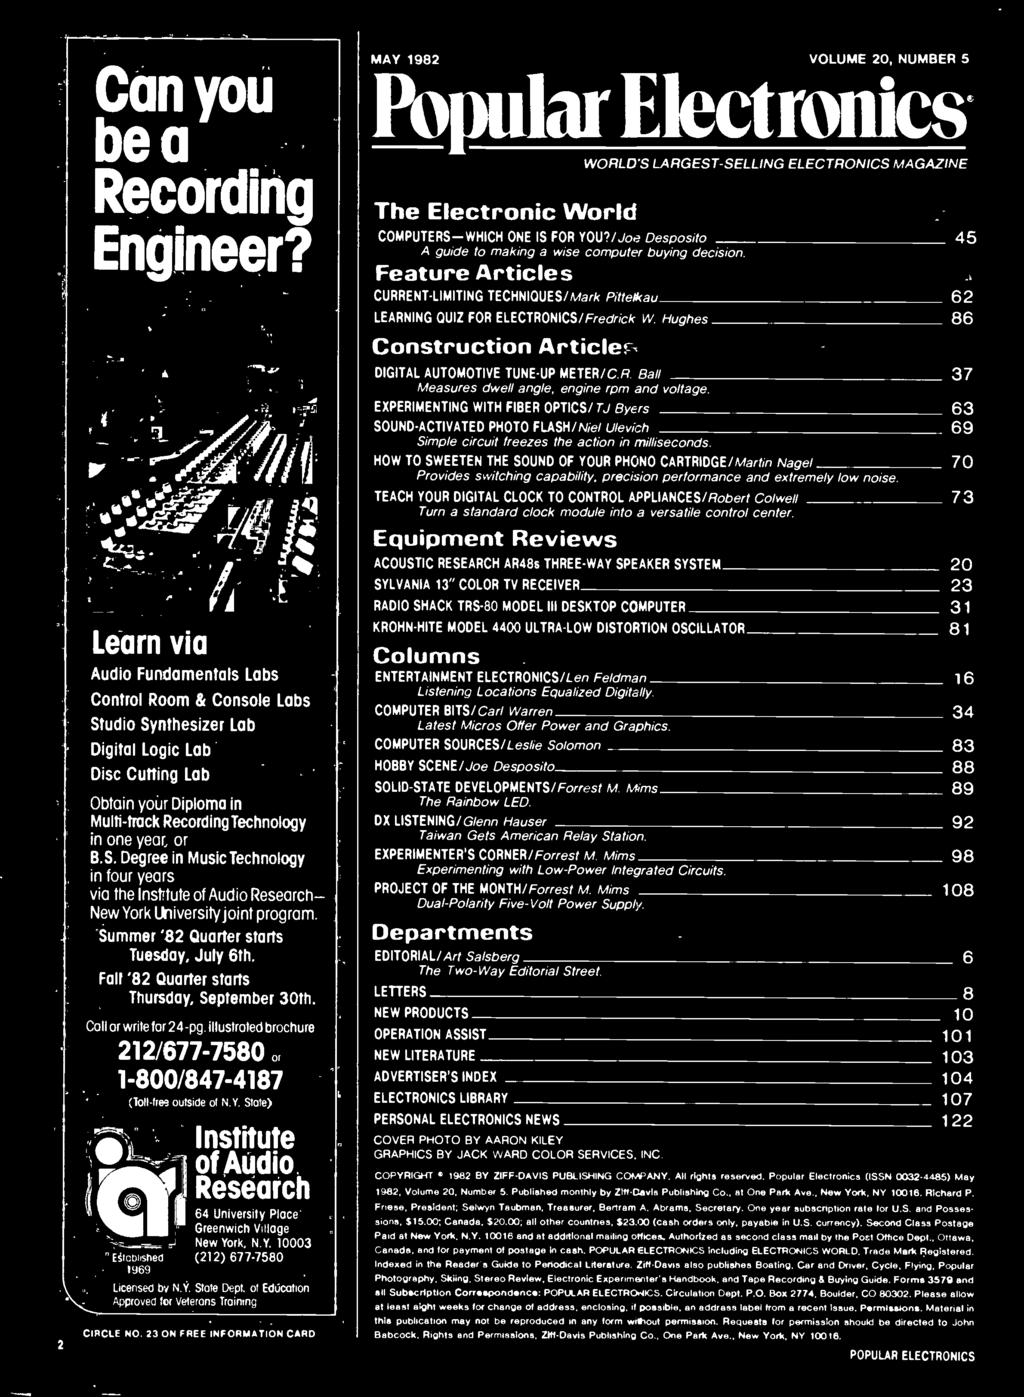 Coniesg Worlds Largest Selling Electronics Magazine May 1982 1 Pdf Mp3 Player Circuit Diagram 5 Free Electronic Circuits 8085 Volume 20 Number Popular The